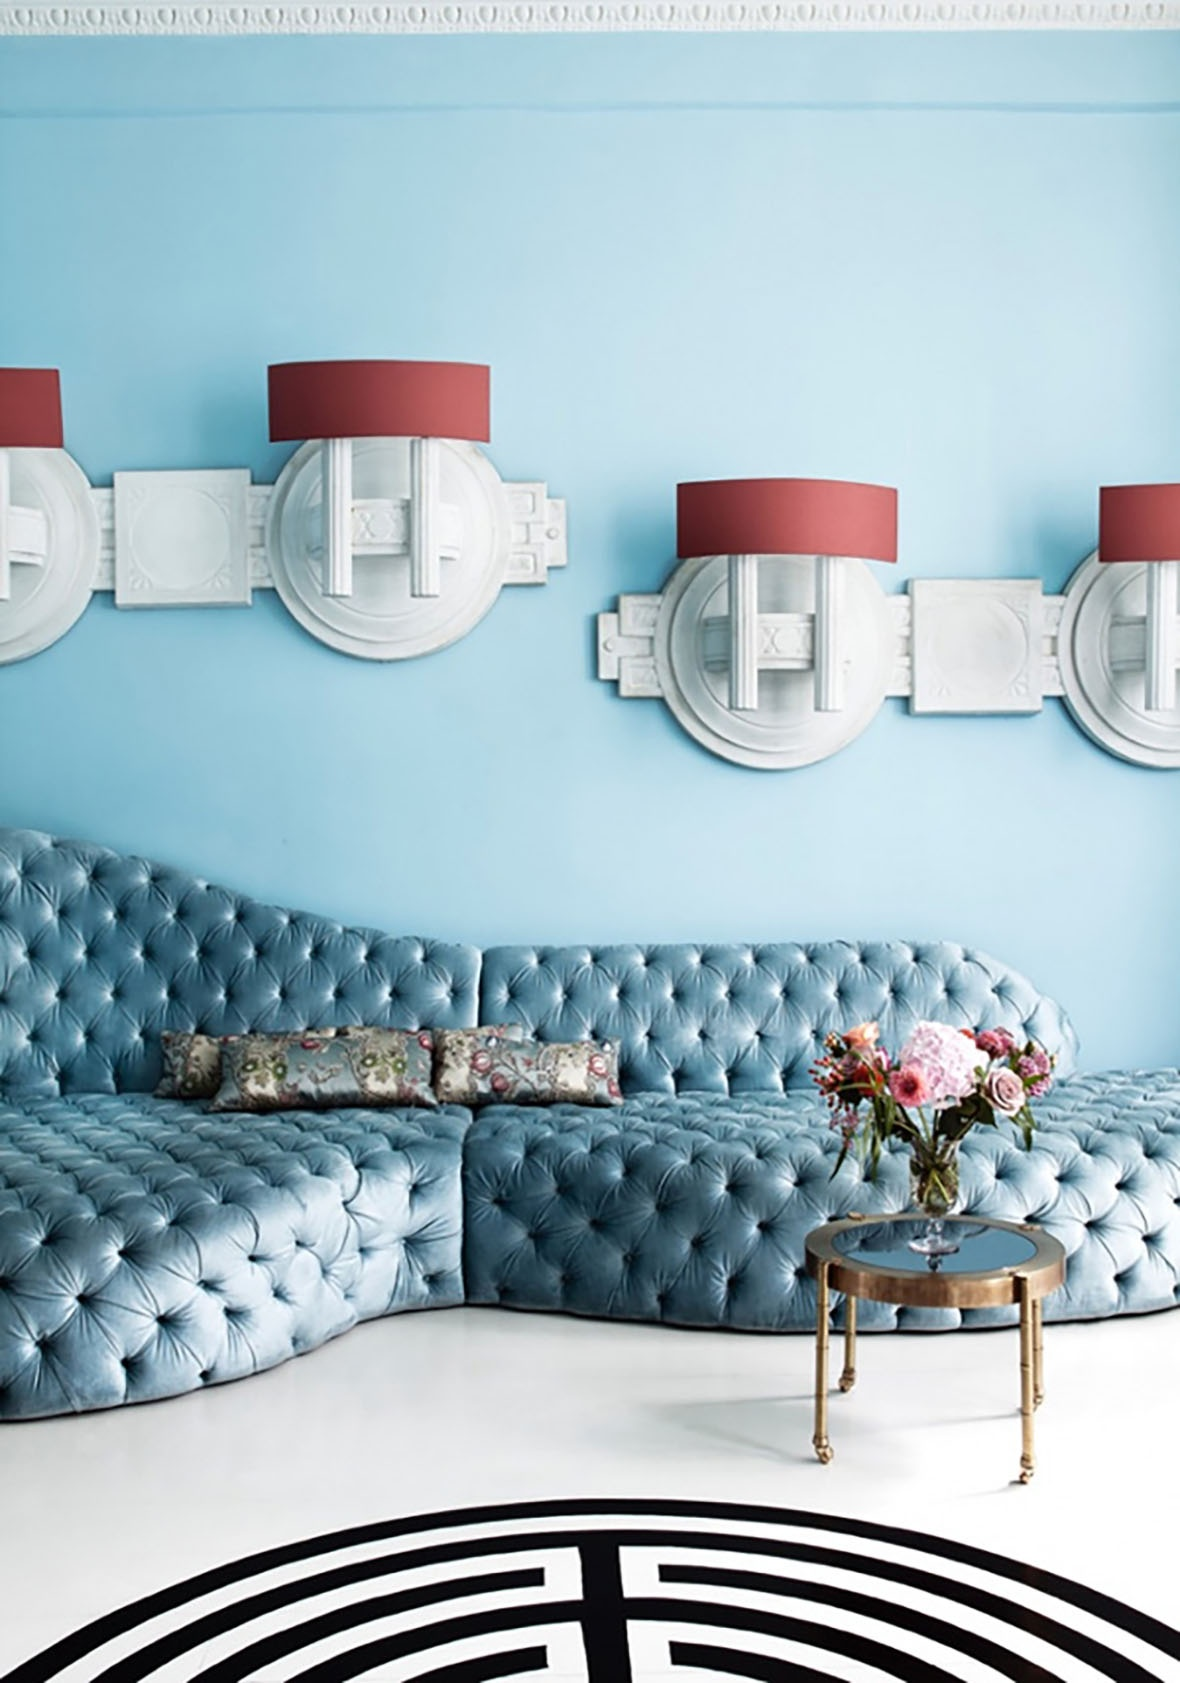 02-the-serenity-blue-diamonf-upholstery-sofa-is-the-focal-point-of-the-living-room_01